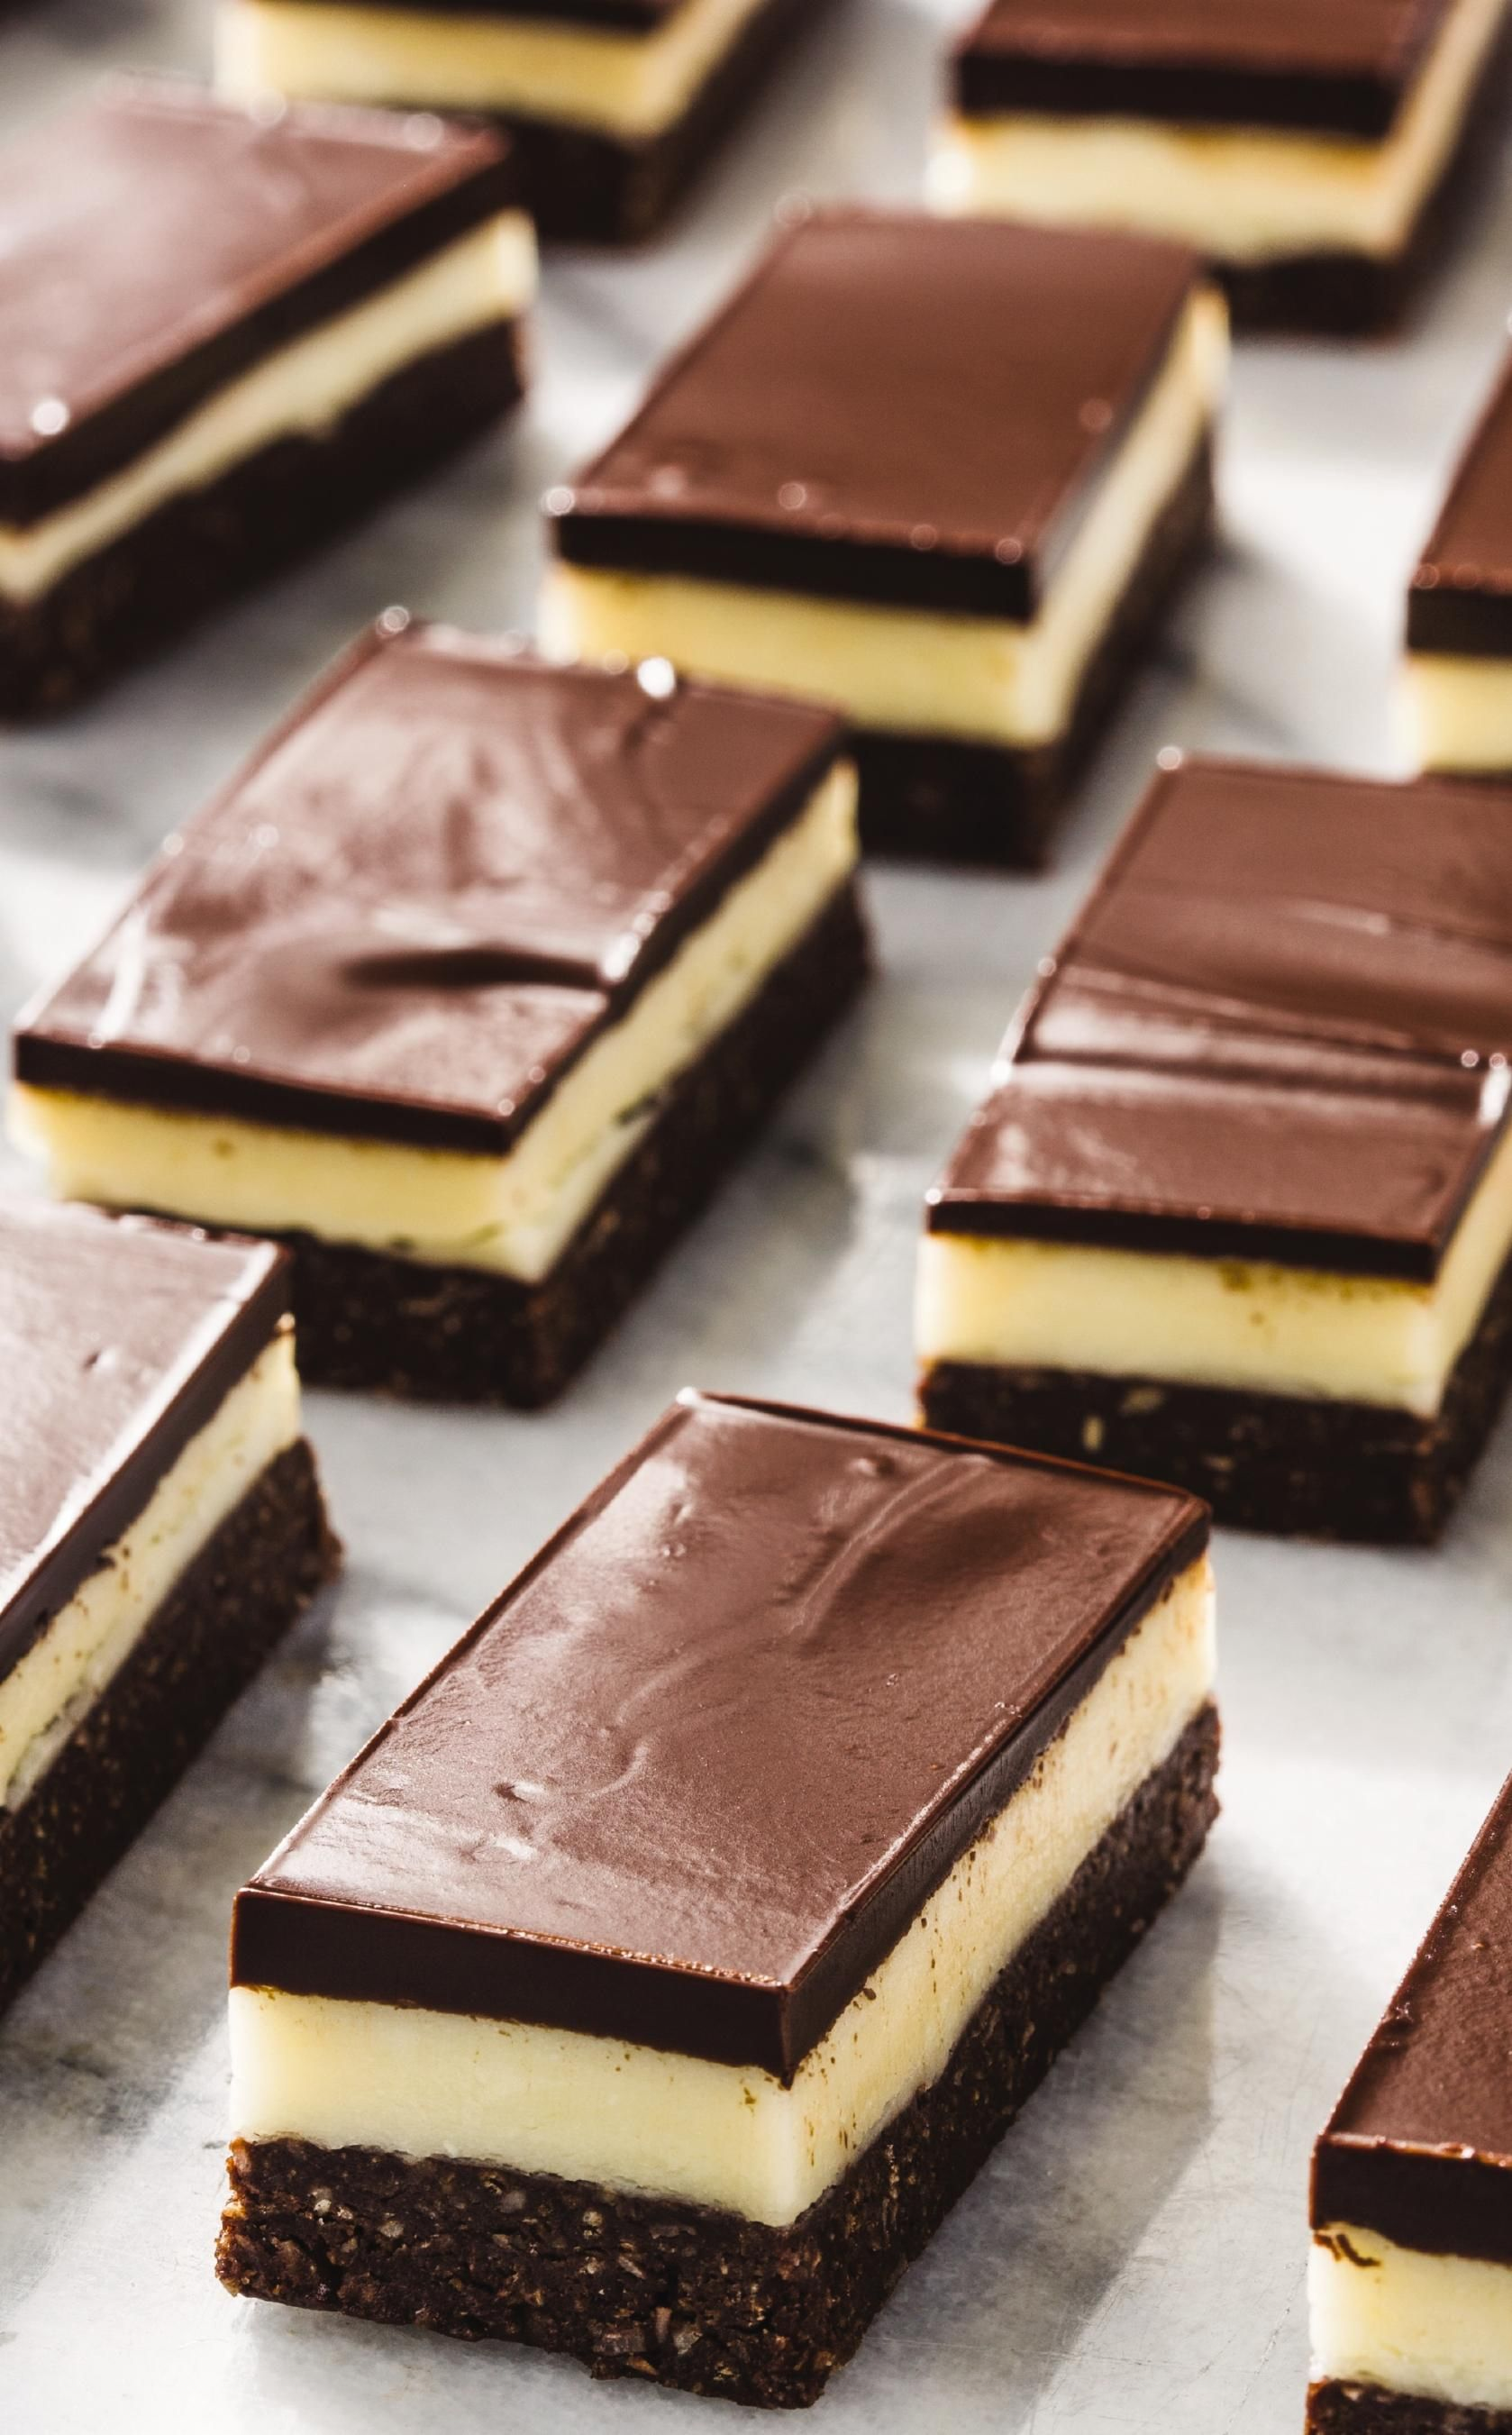 Nanaimo bars: A tri-layer treat of coconutty chocolate crust, creamy center, and dense, chocolate top are going to become your favorite no-bake dessert. #nanaimobars